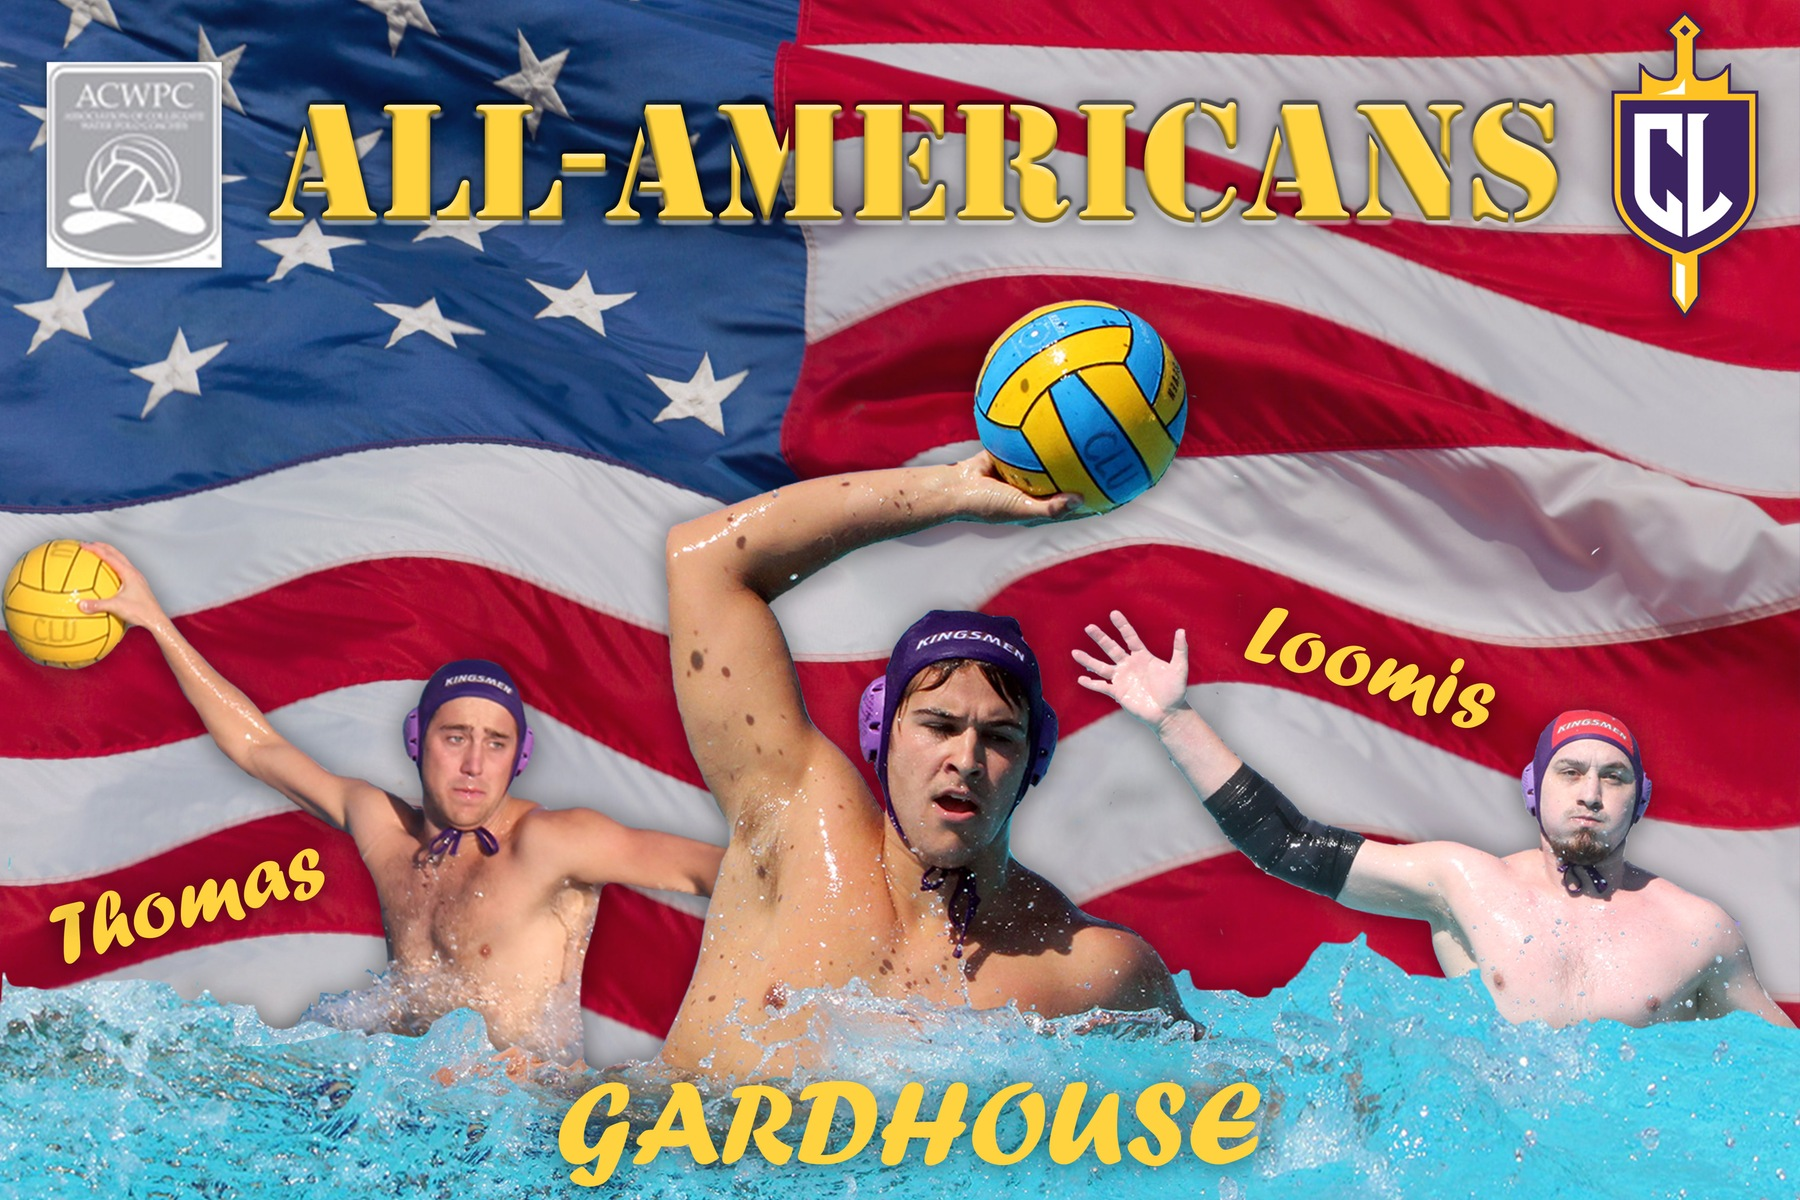 Gardhouse, Loomis and Thomas Named ACWPC All-Americans